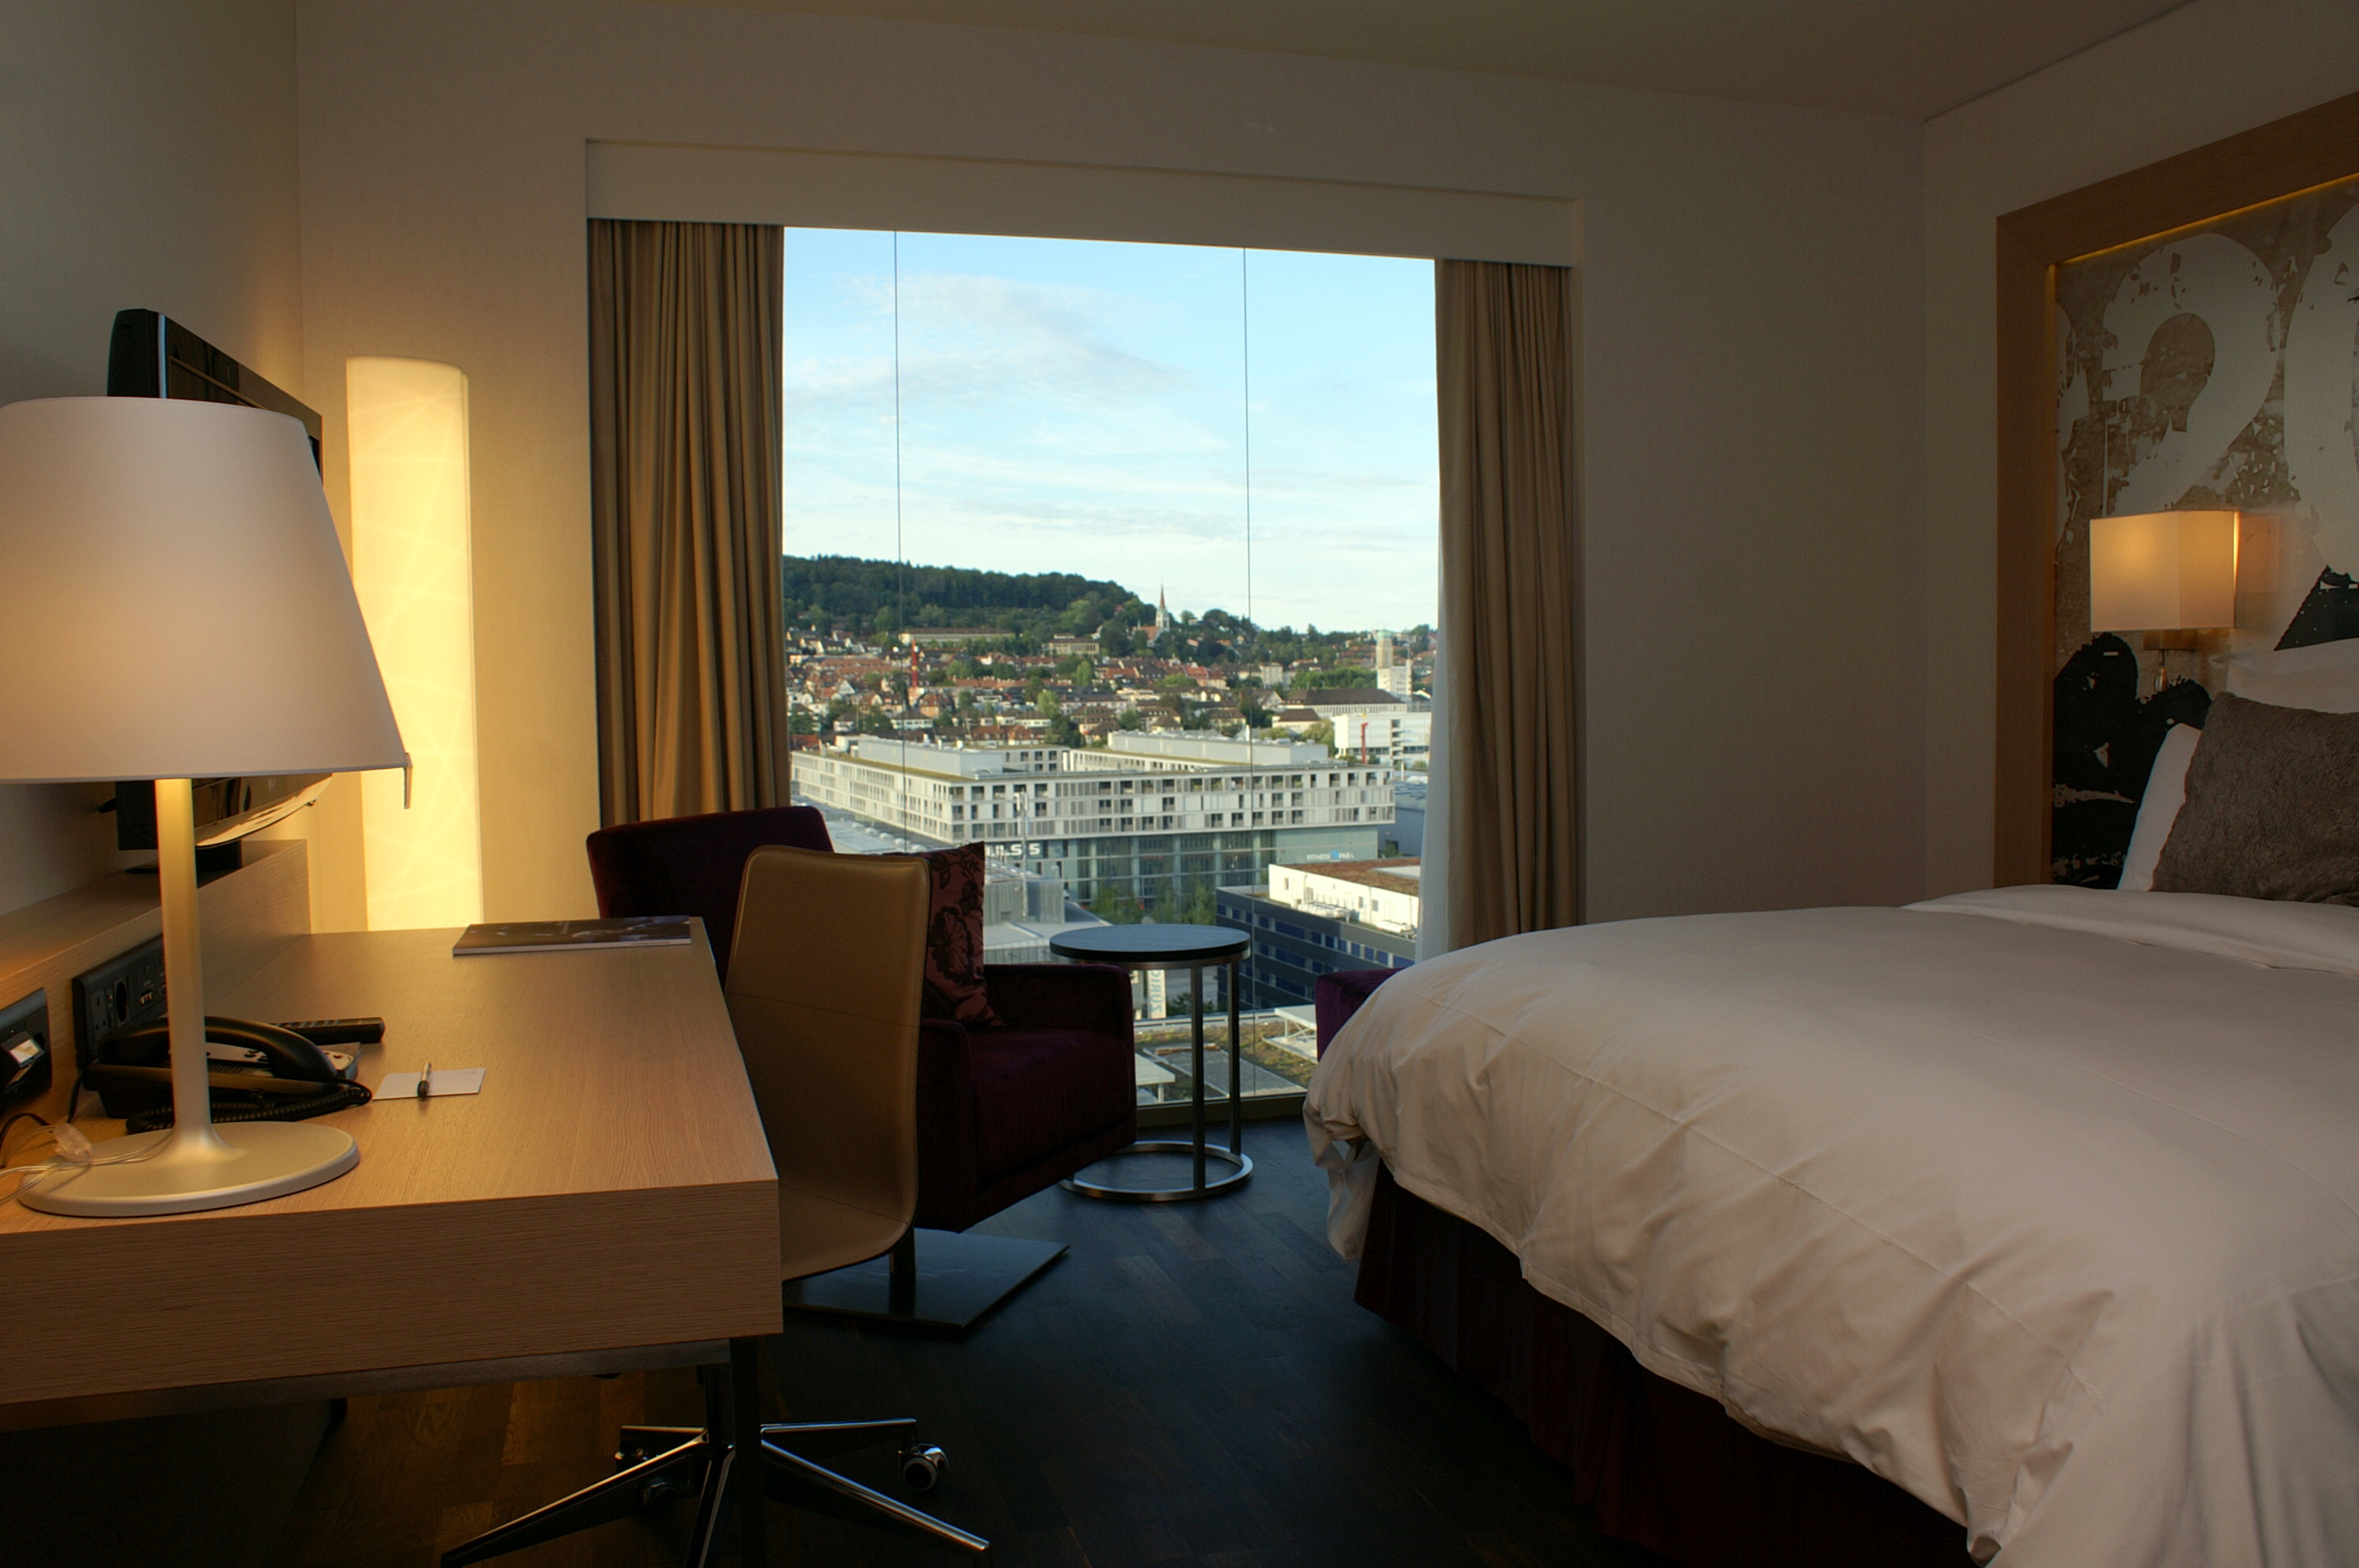 View from a Hotel Room in the Renaissance Zurich Tower Hotel